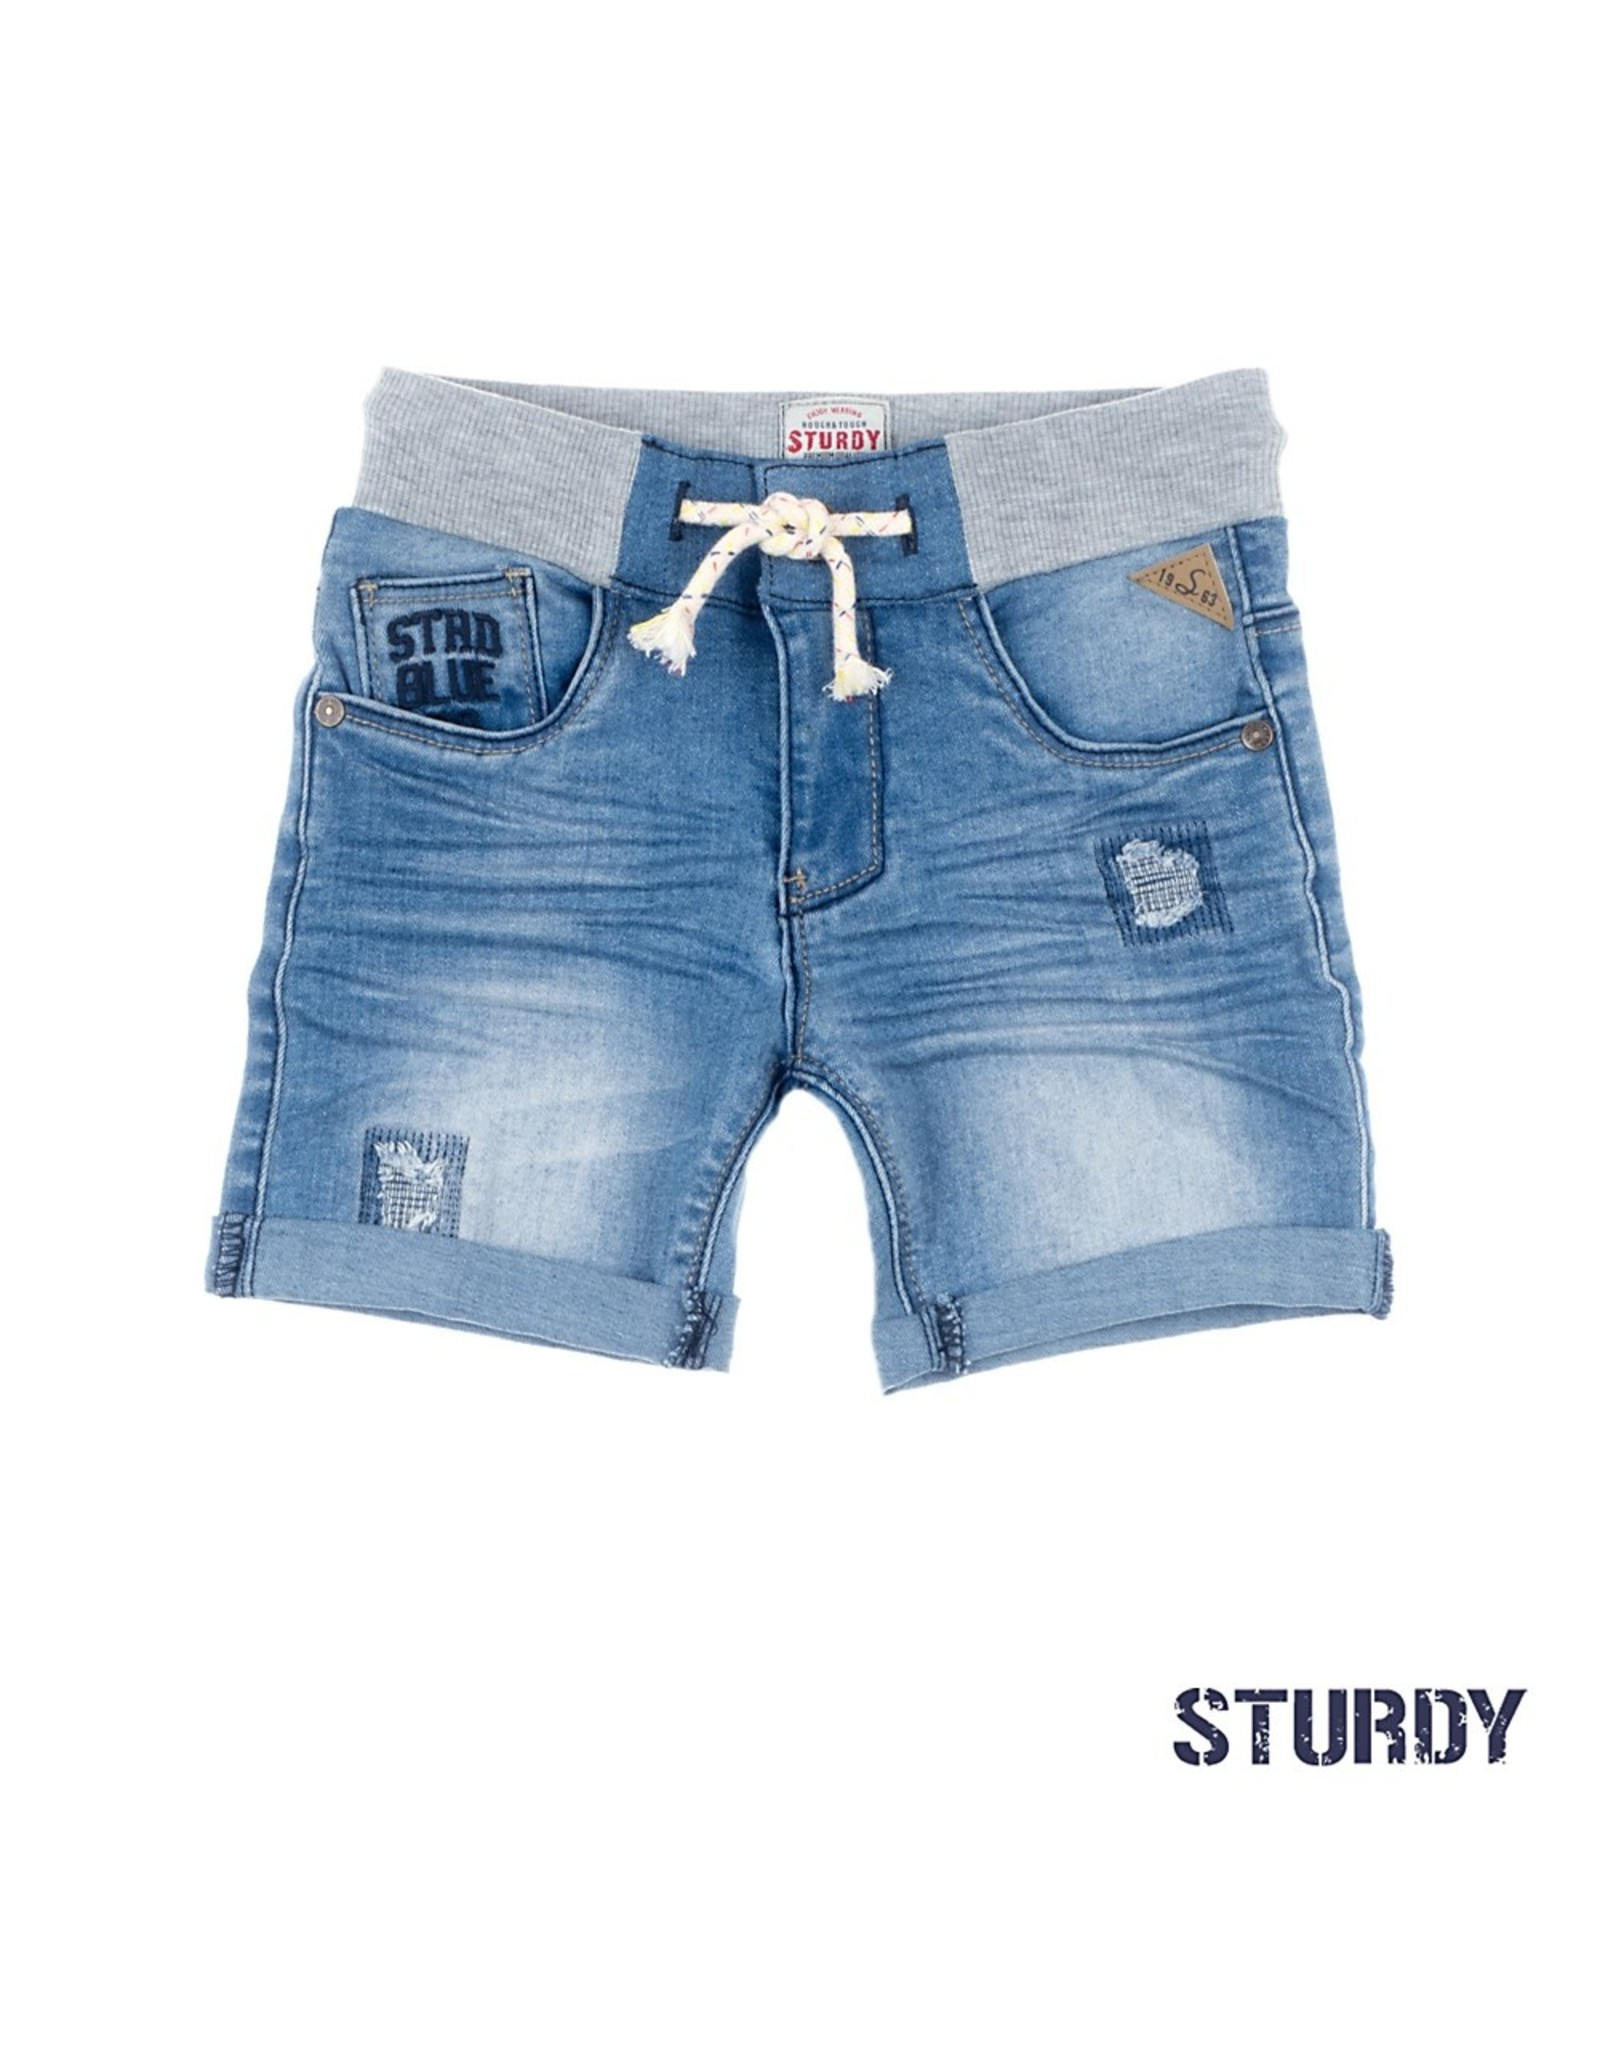 Sturdy Denim short - Summer Denims